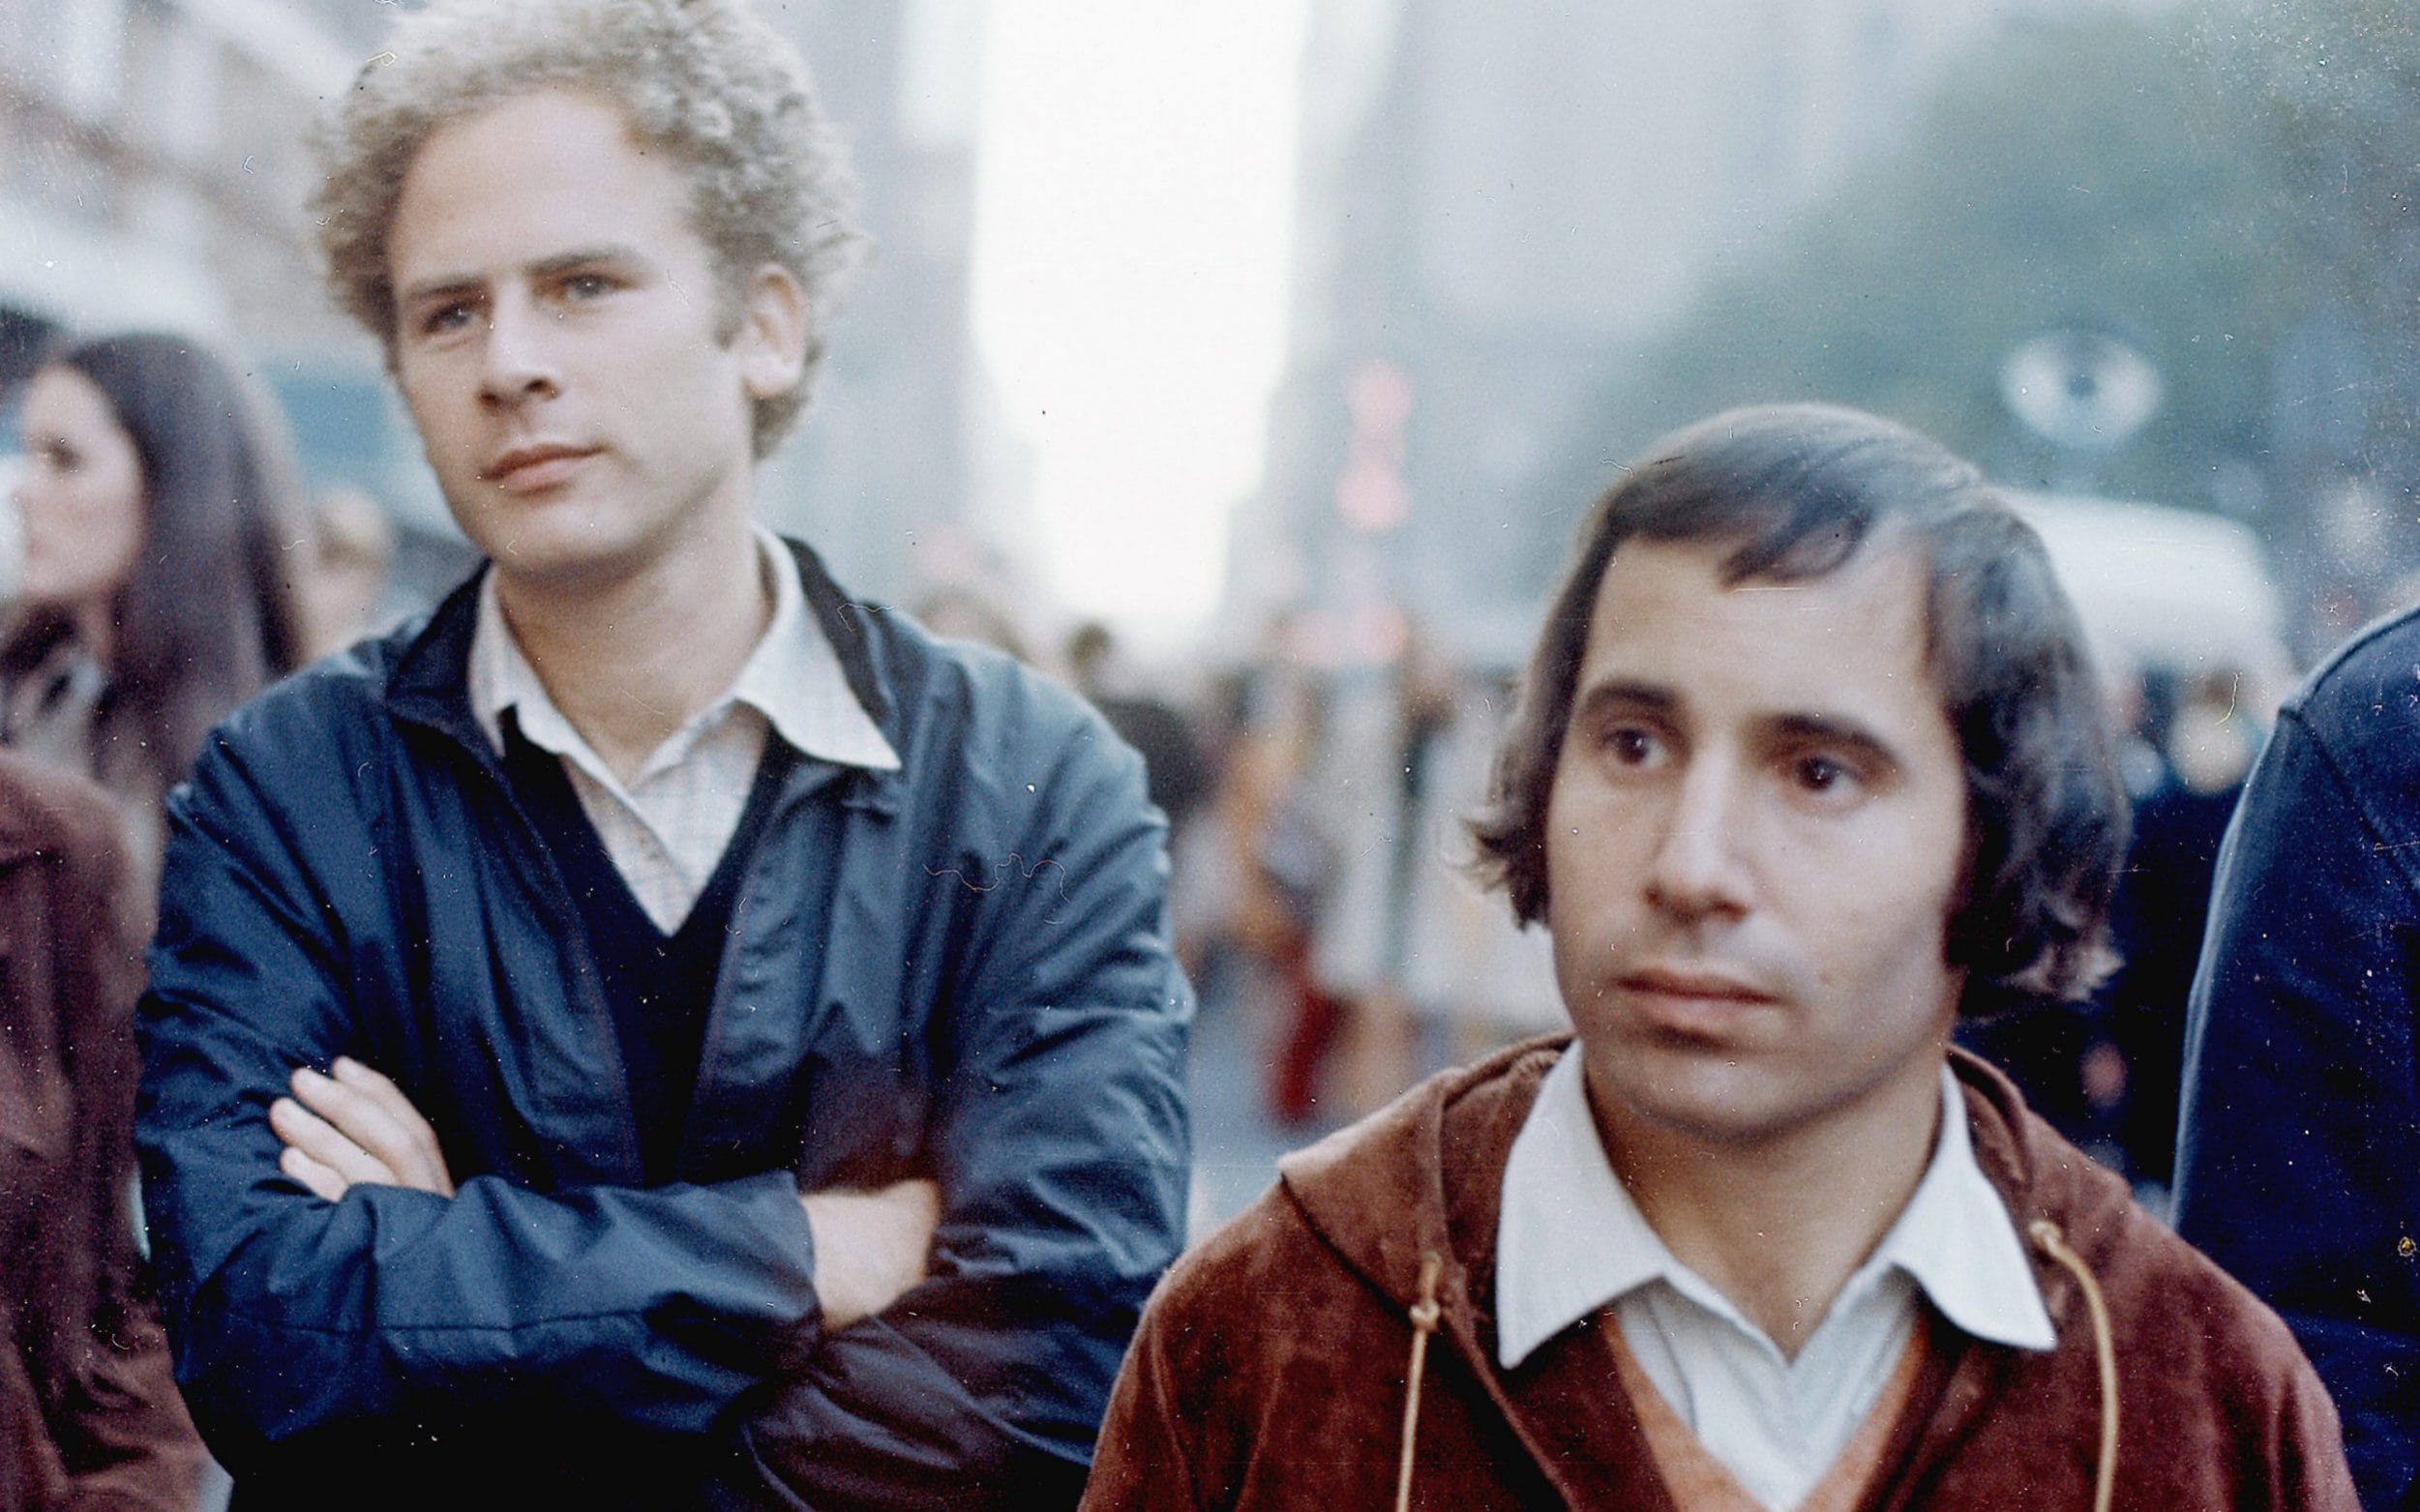 EVERY UK NUMBER ONE SONG: 'Bridge Over Troubled water' – Simon & Garfunkel – Talk About Pop Music